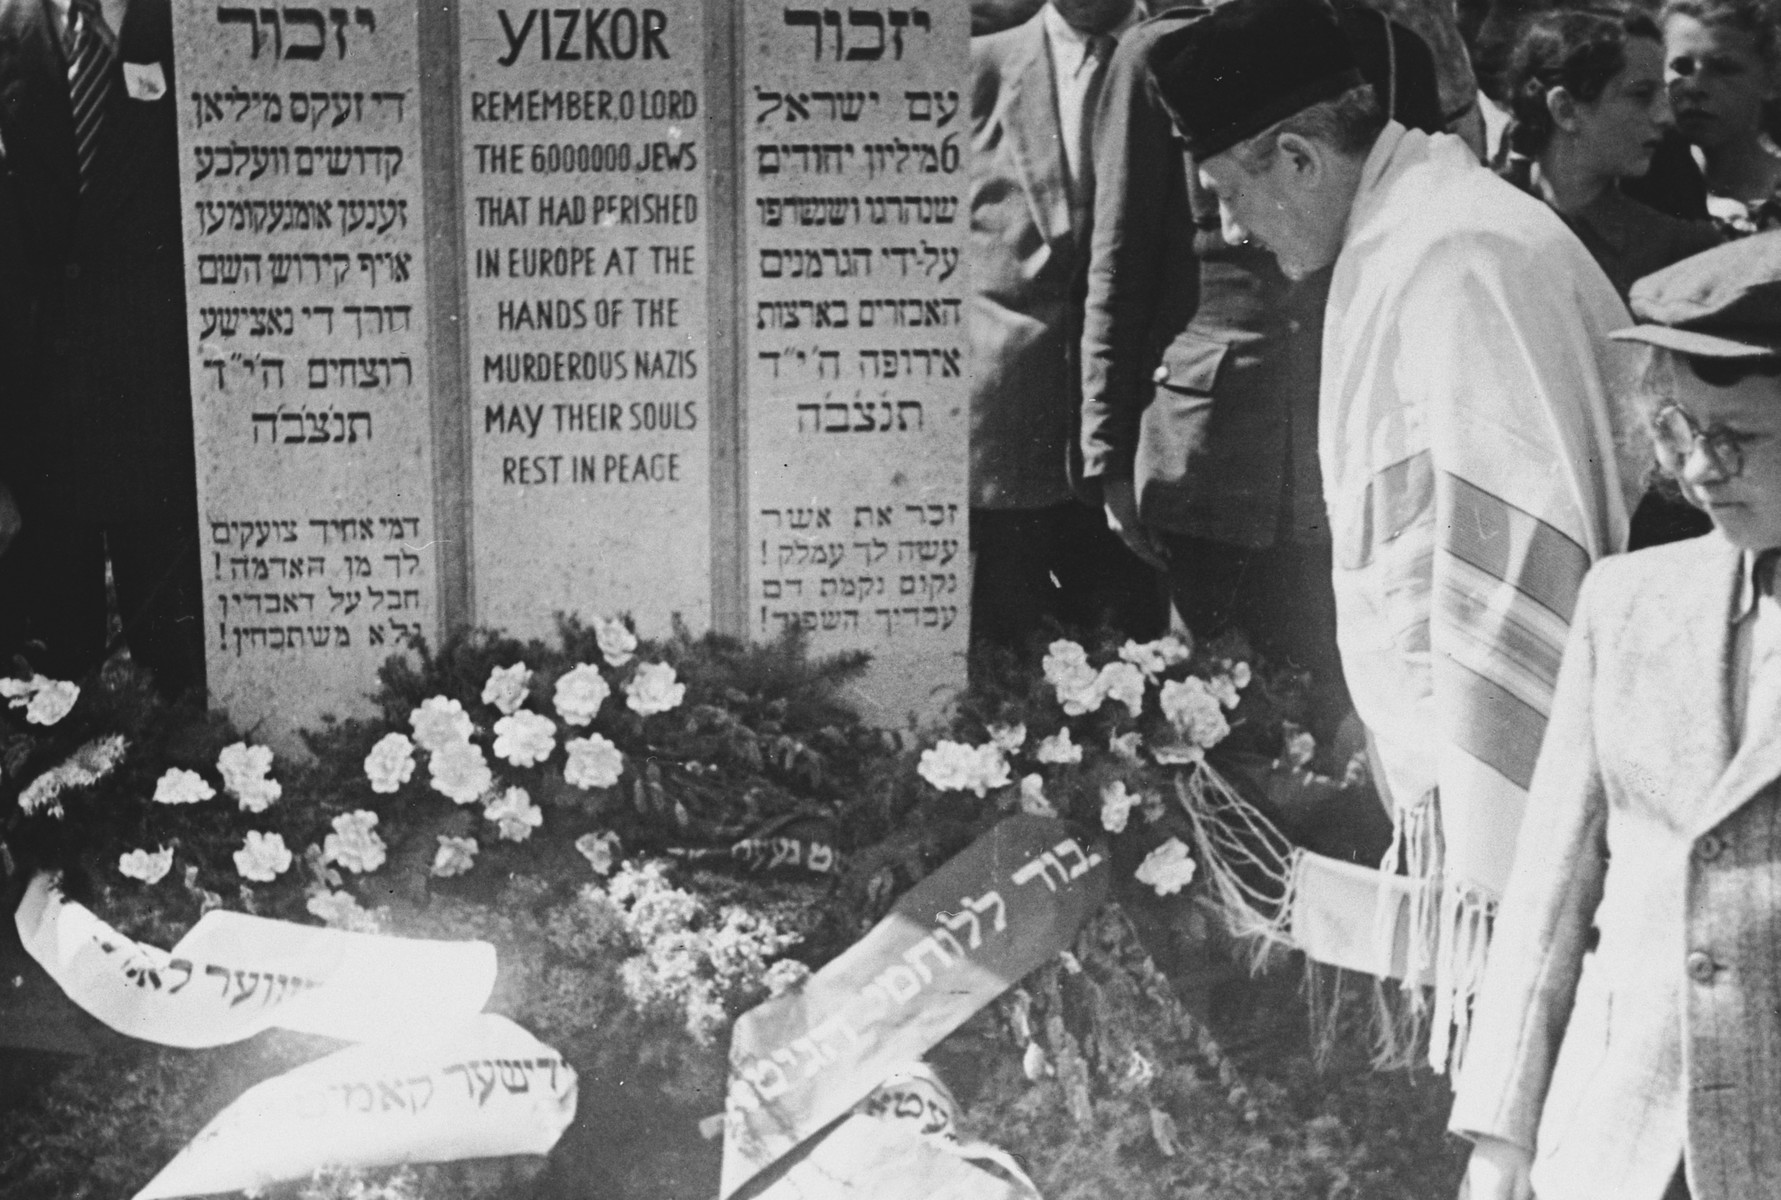 Cantor Pinchos Rabinowitz, clad in a large prayer shawl, offers prayers in front of a memorial to the victims of the Holocaust adorned with wreaths of flowers.